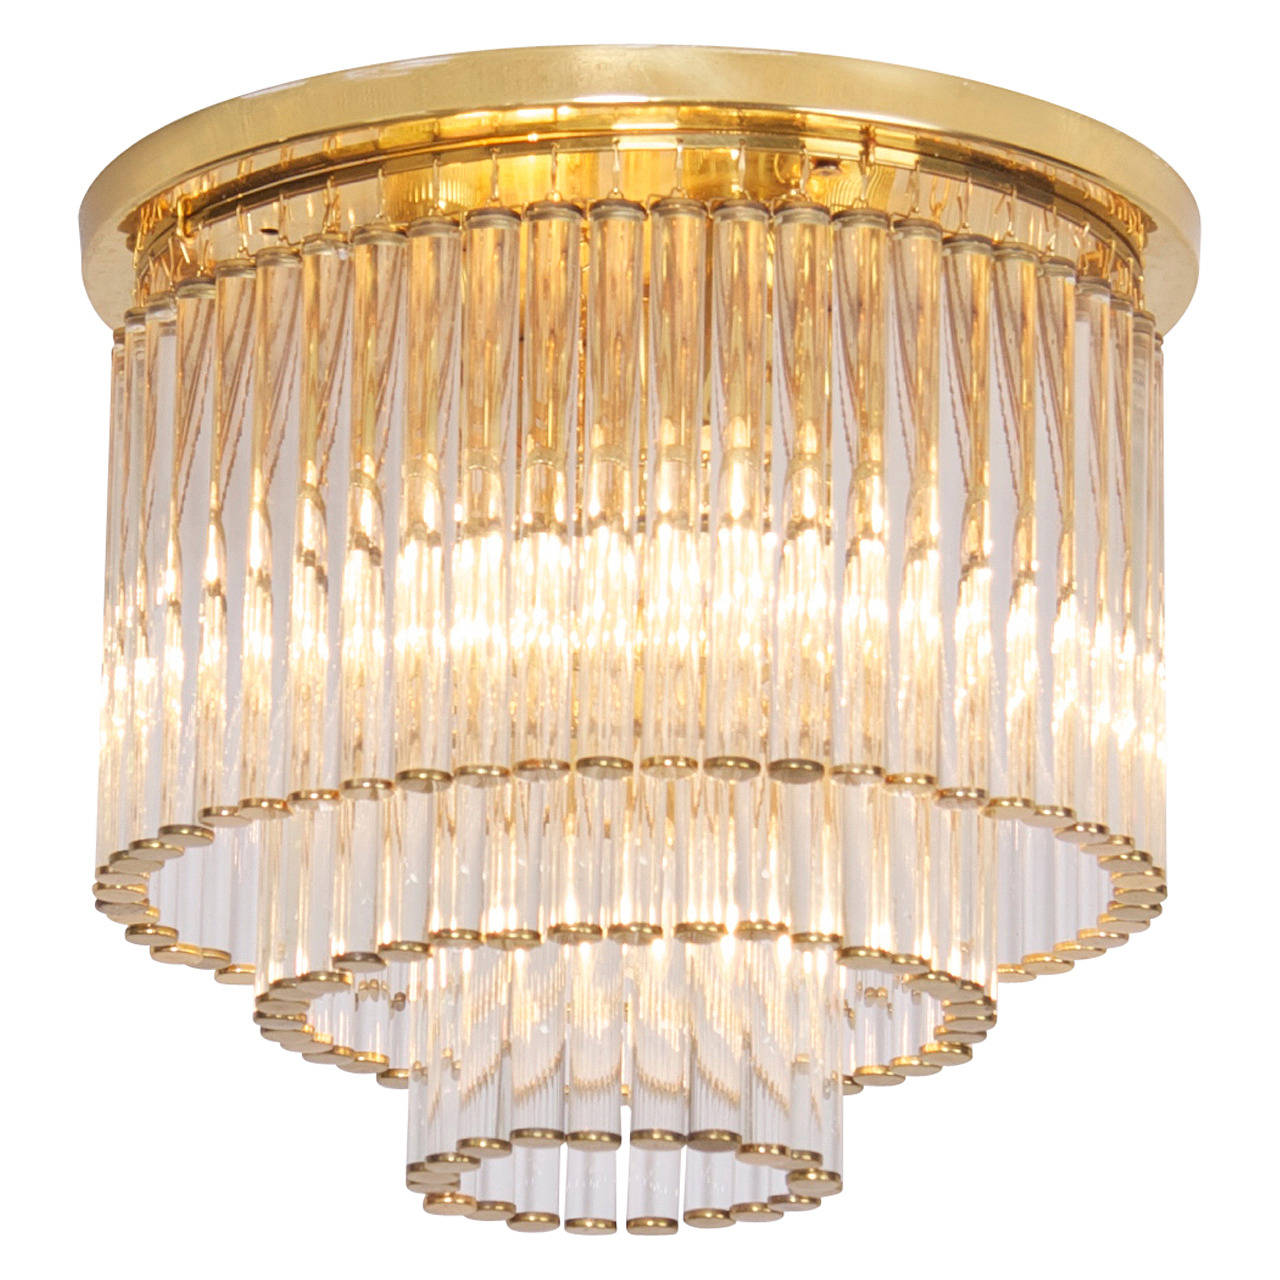 Glass and Brass Flush Mount Fixture by Ernst Palme in the Manner of Venini